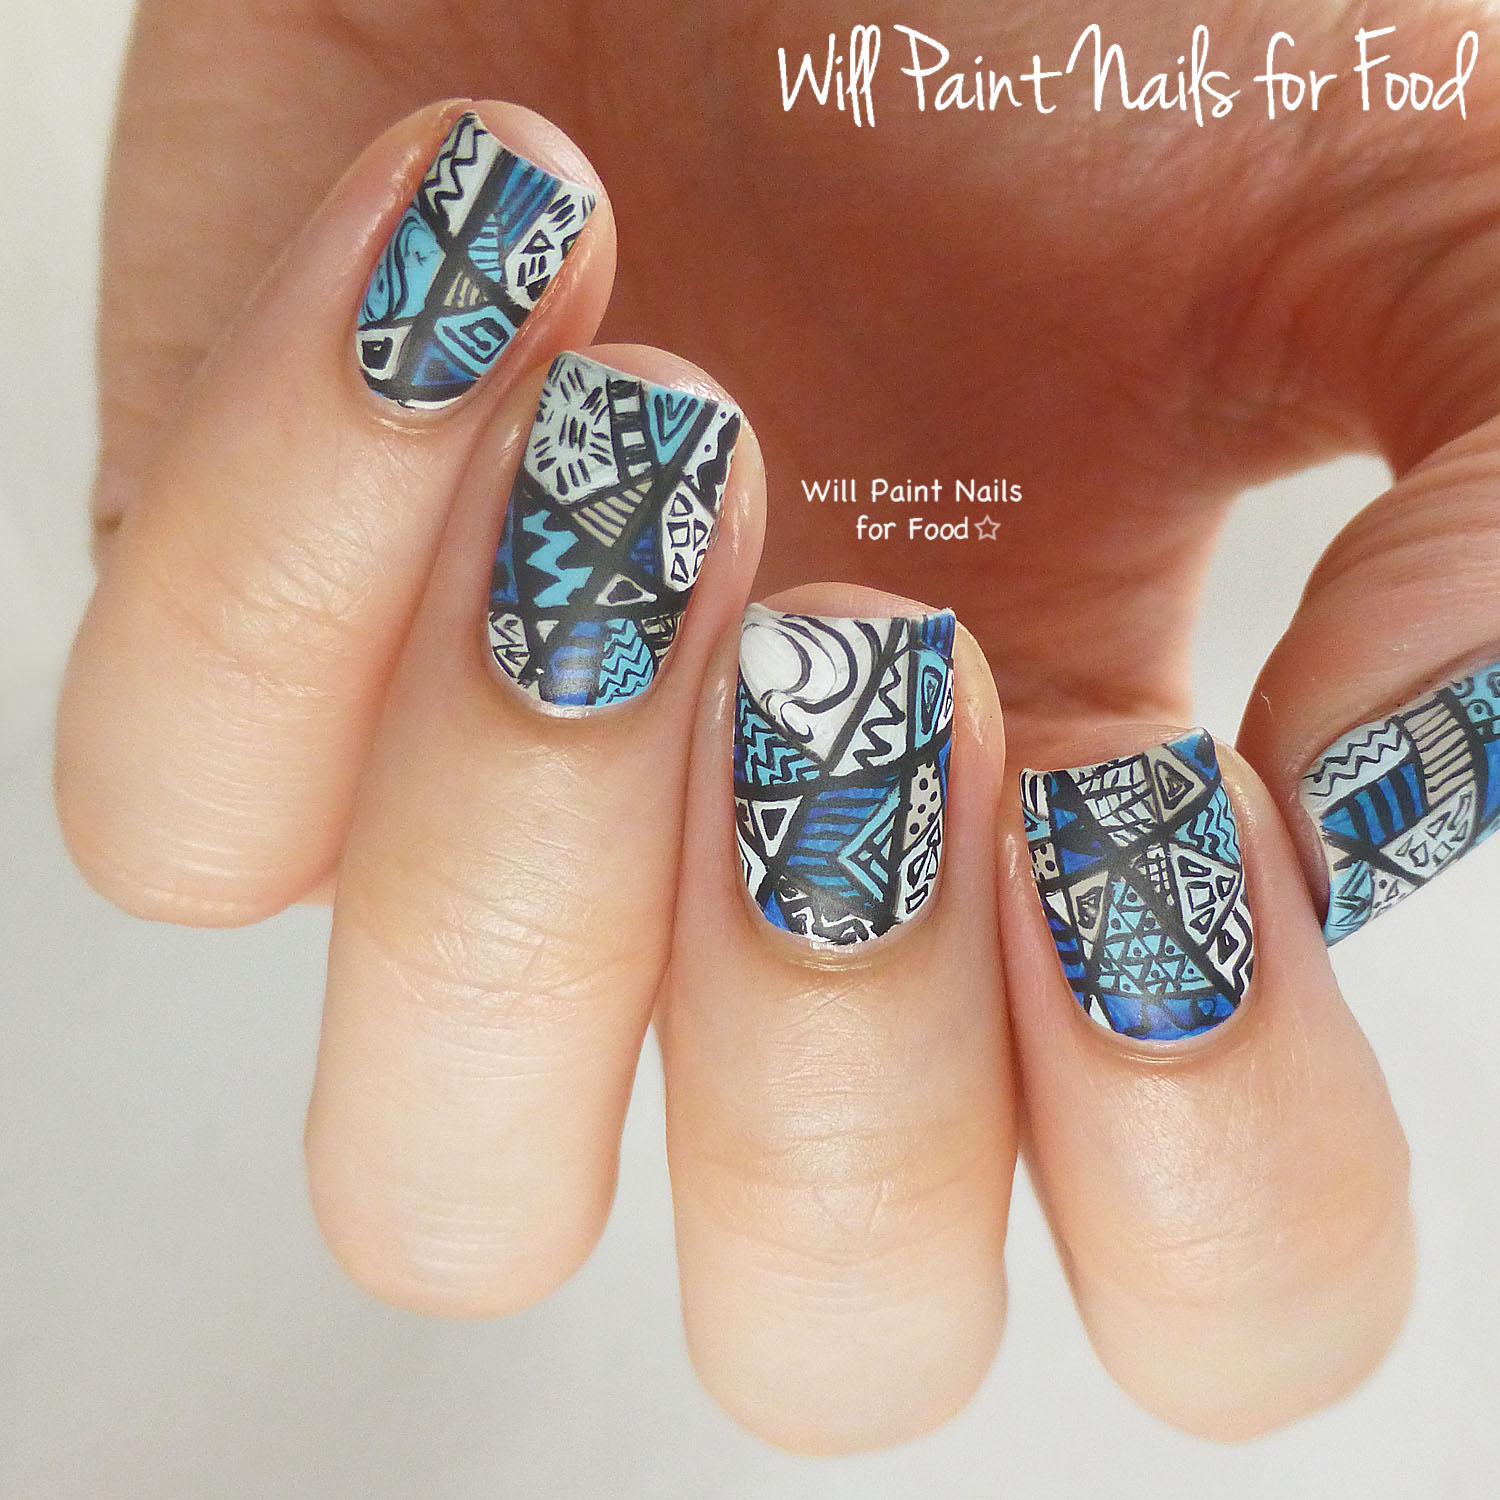 intricate-nail-art-designs-15 | Indian Makeup and Beauty Blog ...